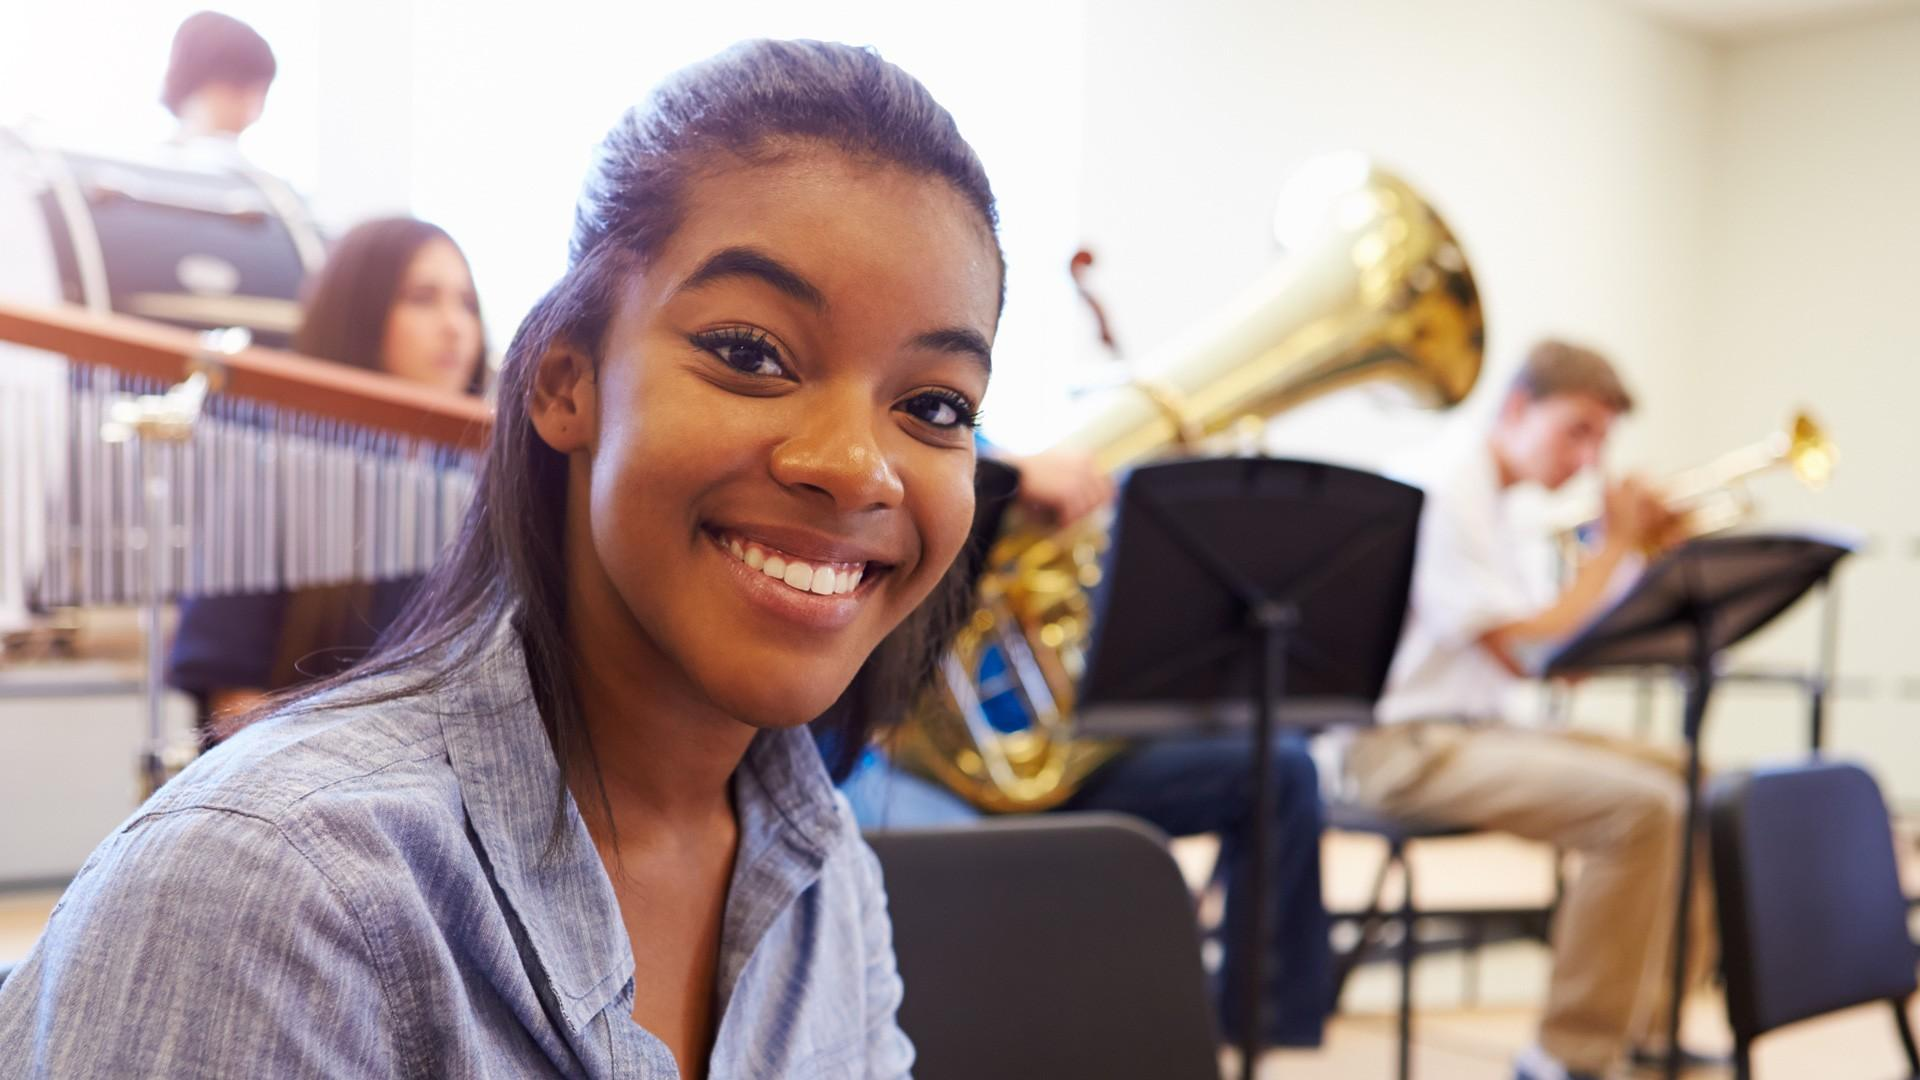 Music Student smiling